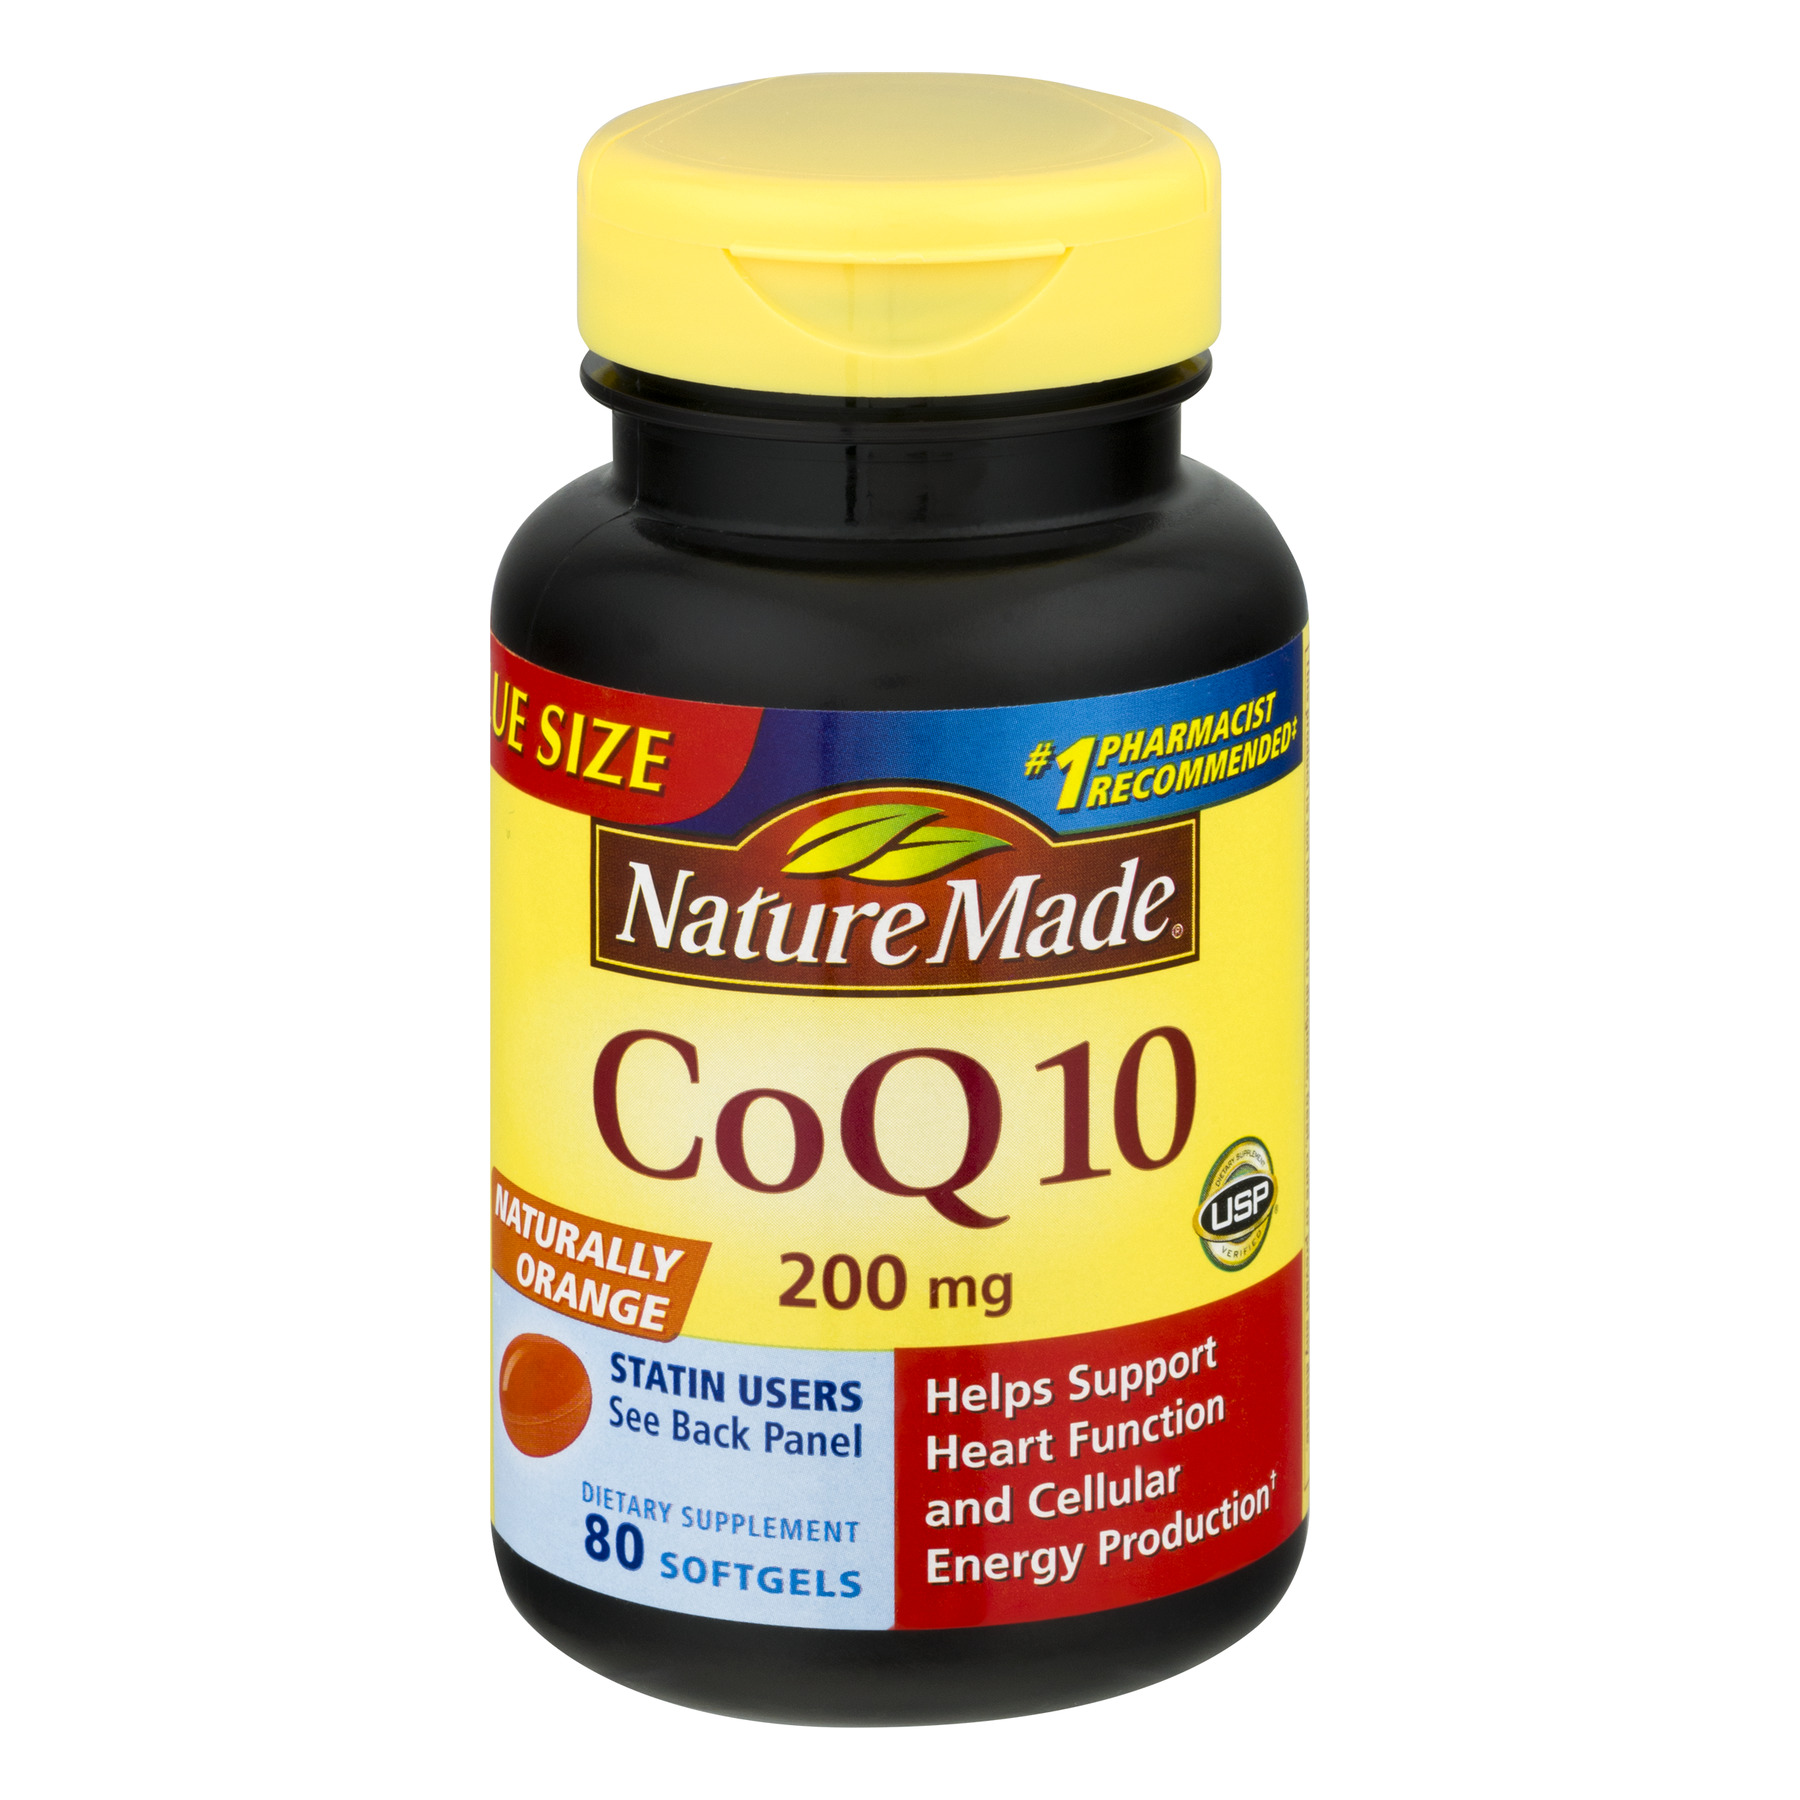 Nature Made Naturally Orange CoQ10 Softgels Value Size, 200 mg, 80 count